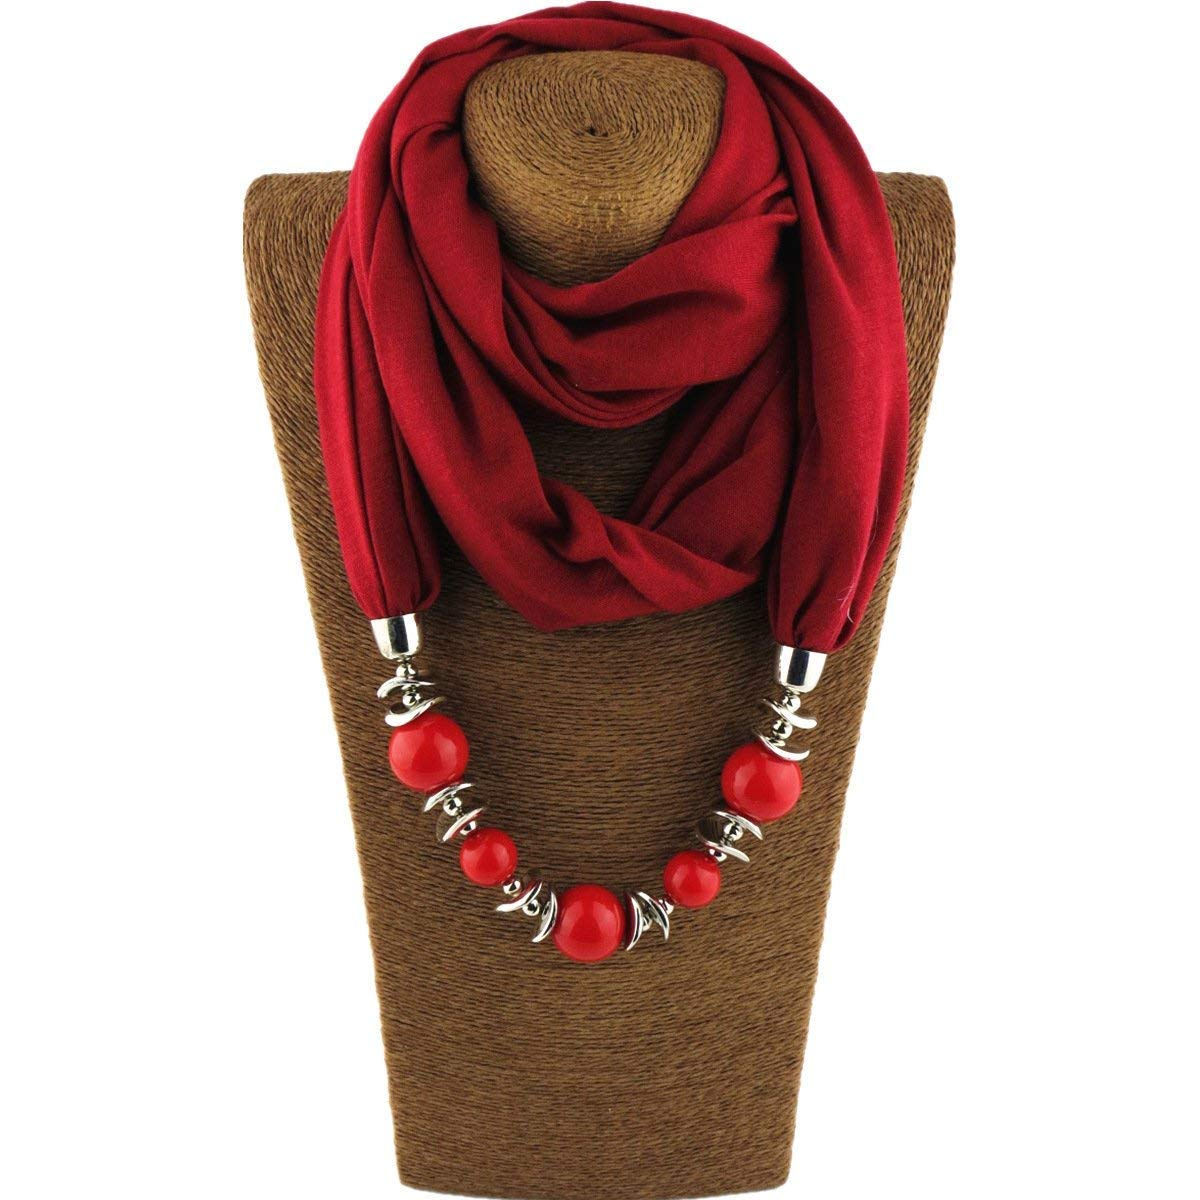 Classic Style Chiffon Necklace Sash Scarf with Jewelry Pendant (Wine Red 8)